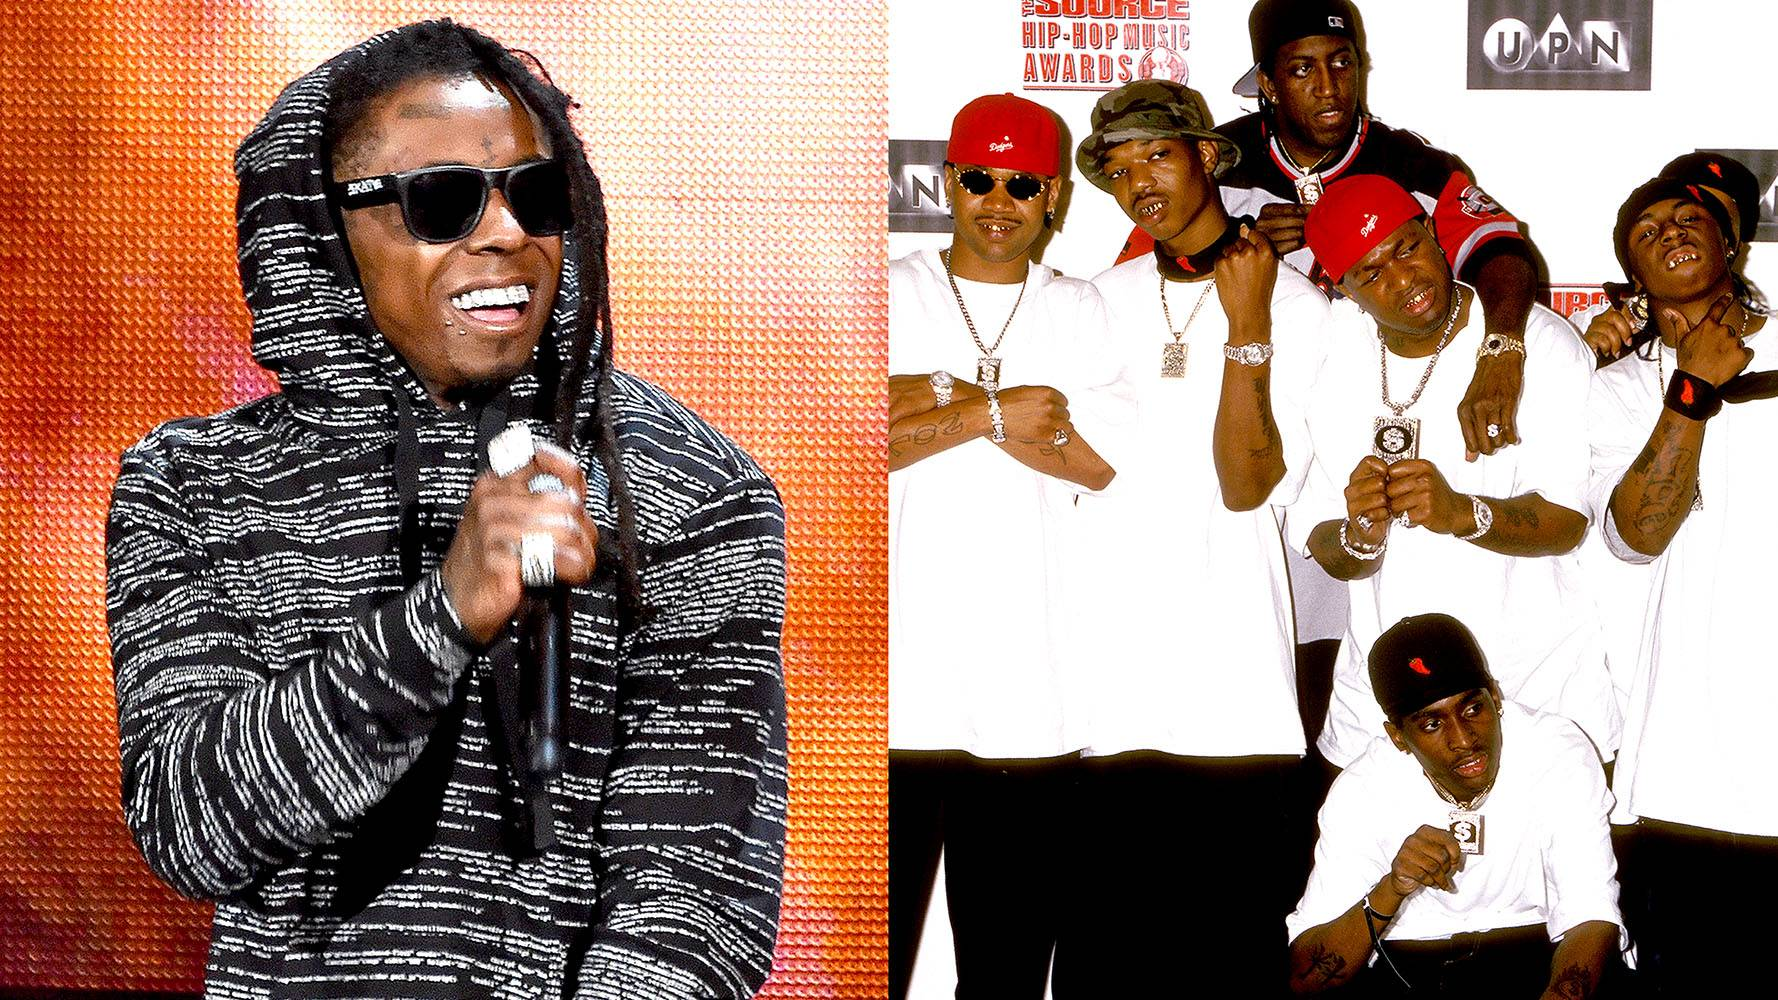 Lil' Wayne | Hot Boys  - These Hot Boys were on fire! In '99, rappers Lil' Wayne, Juvenile, BG and Turk dropped Guerilla Warfare and demanded their respect after selling over 1.5 million since its release. Lil' Wayne is sitting on millions now with an awesome solo career and top exec positions. Must be nice! (Photos from Left: Kevin Winter/Getty Images, Ron Galella, Ltd./WireImage/Getty Images)